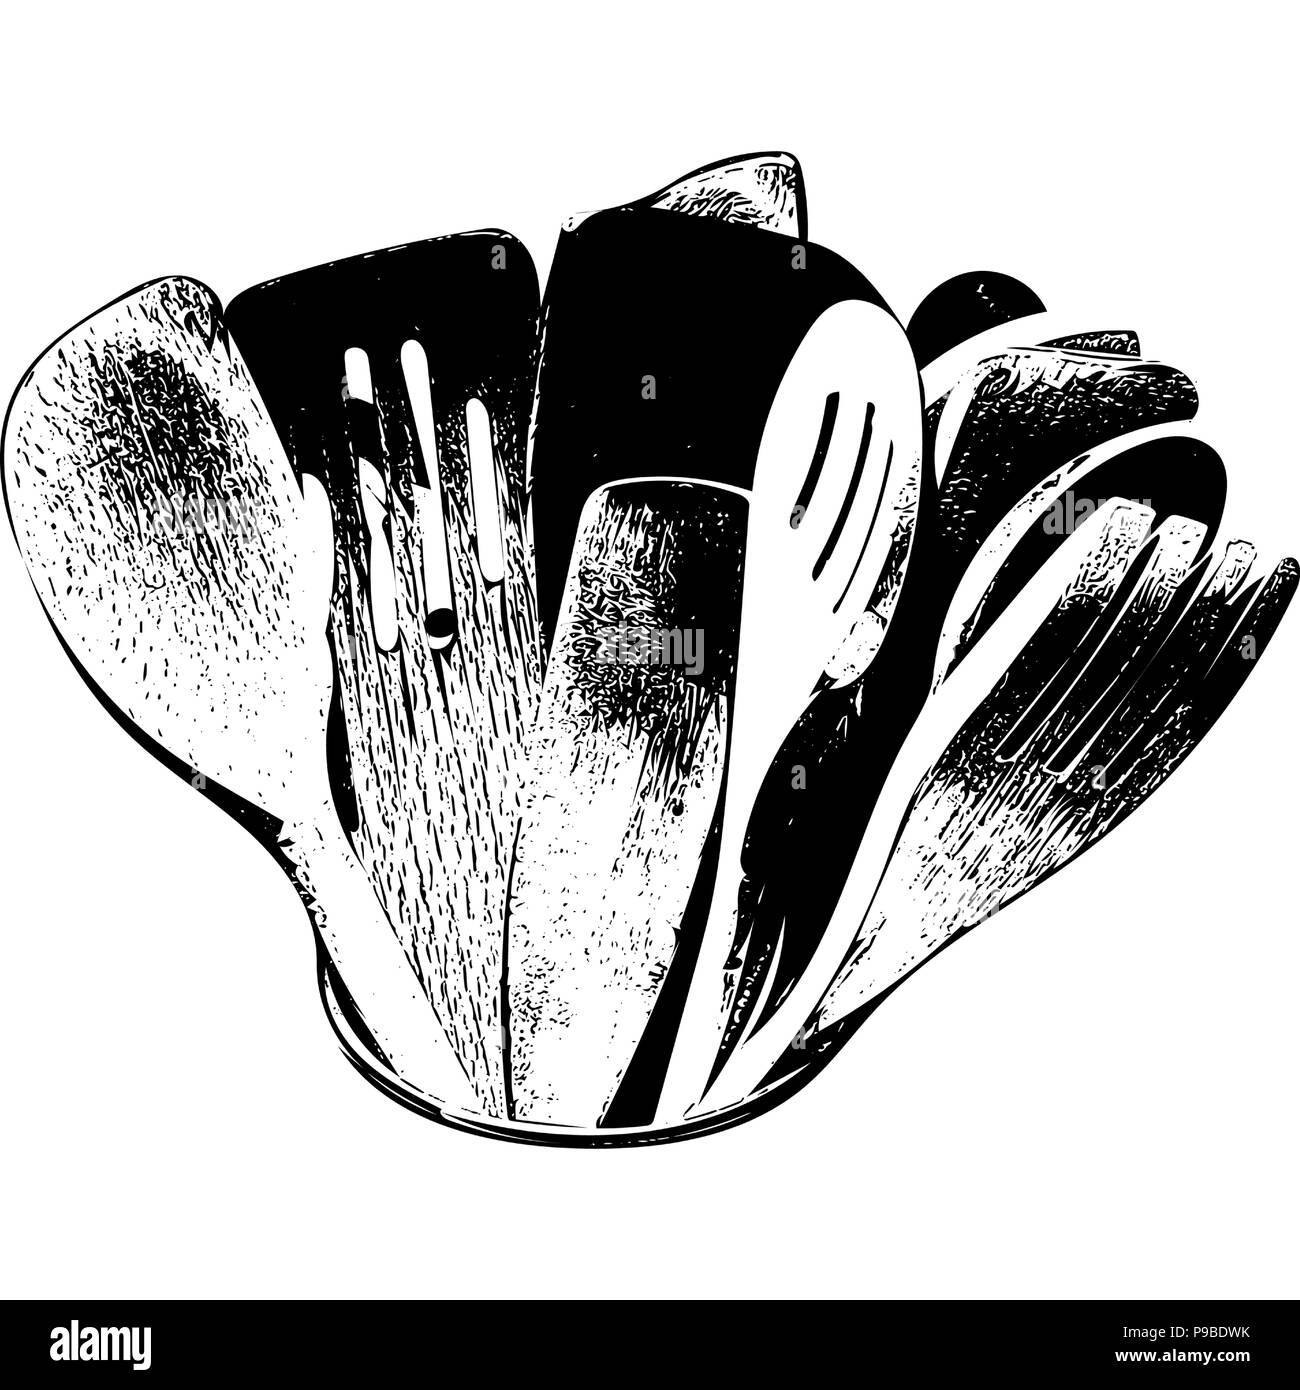 Black and white vector graphic of assorted wooden cooking utensils stood upright. - Stock Vector